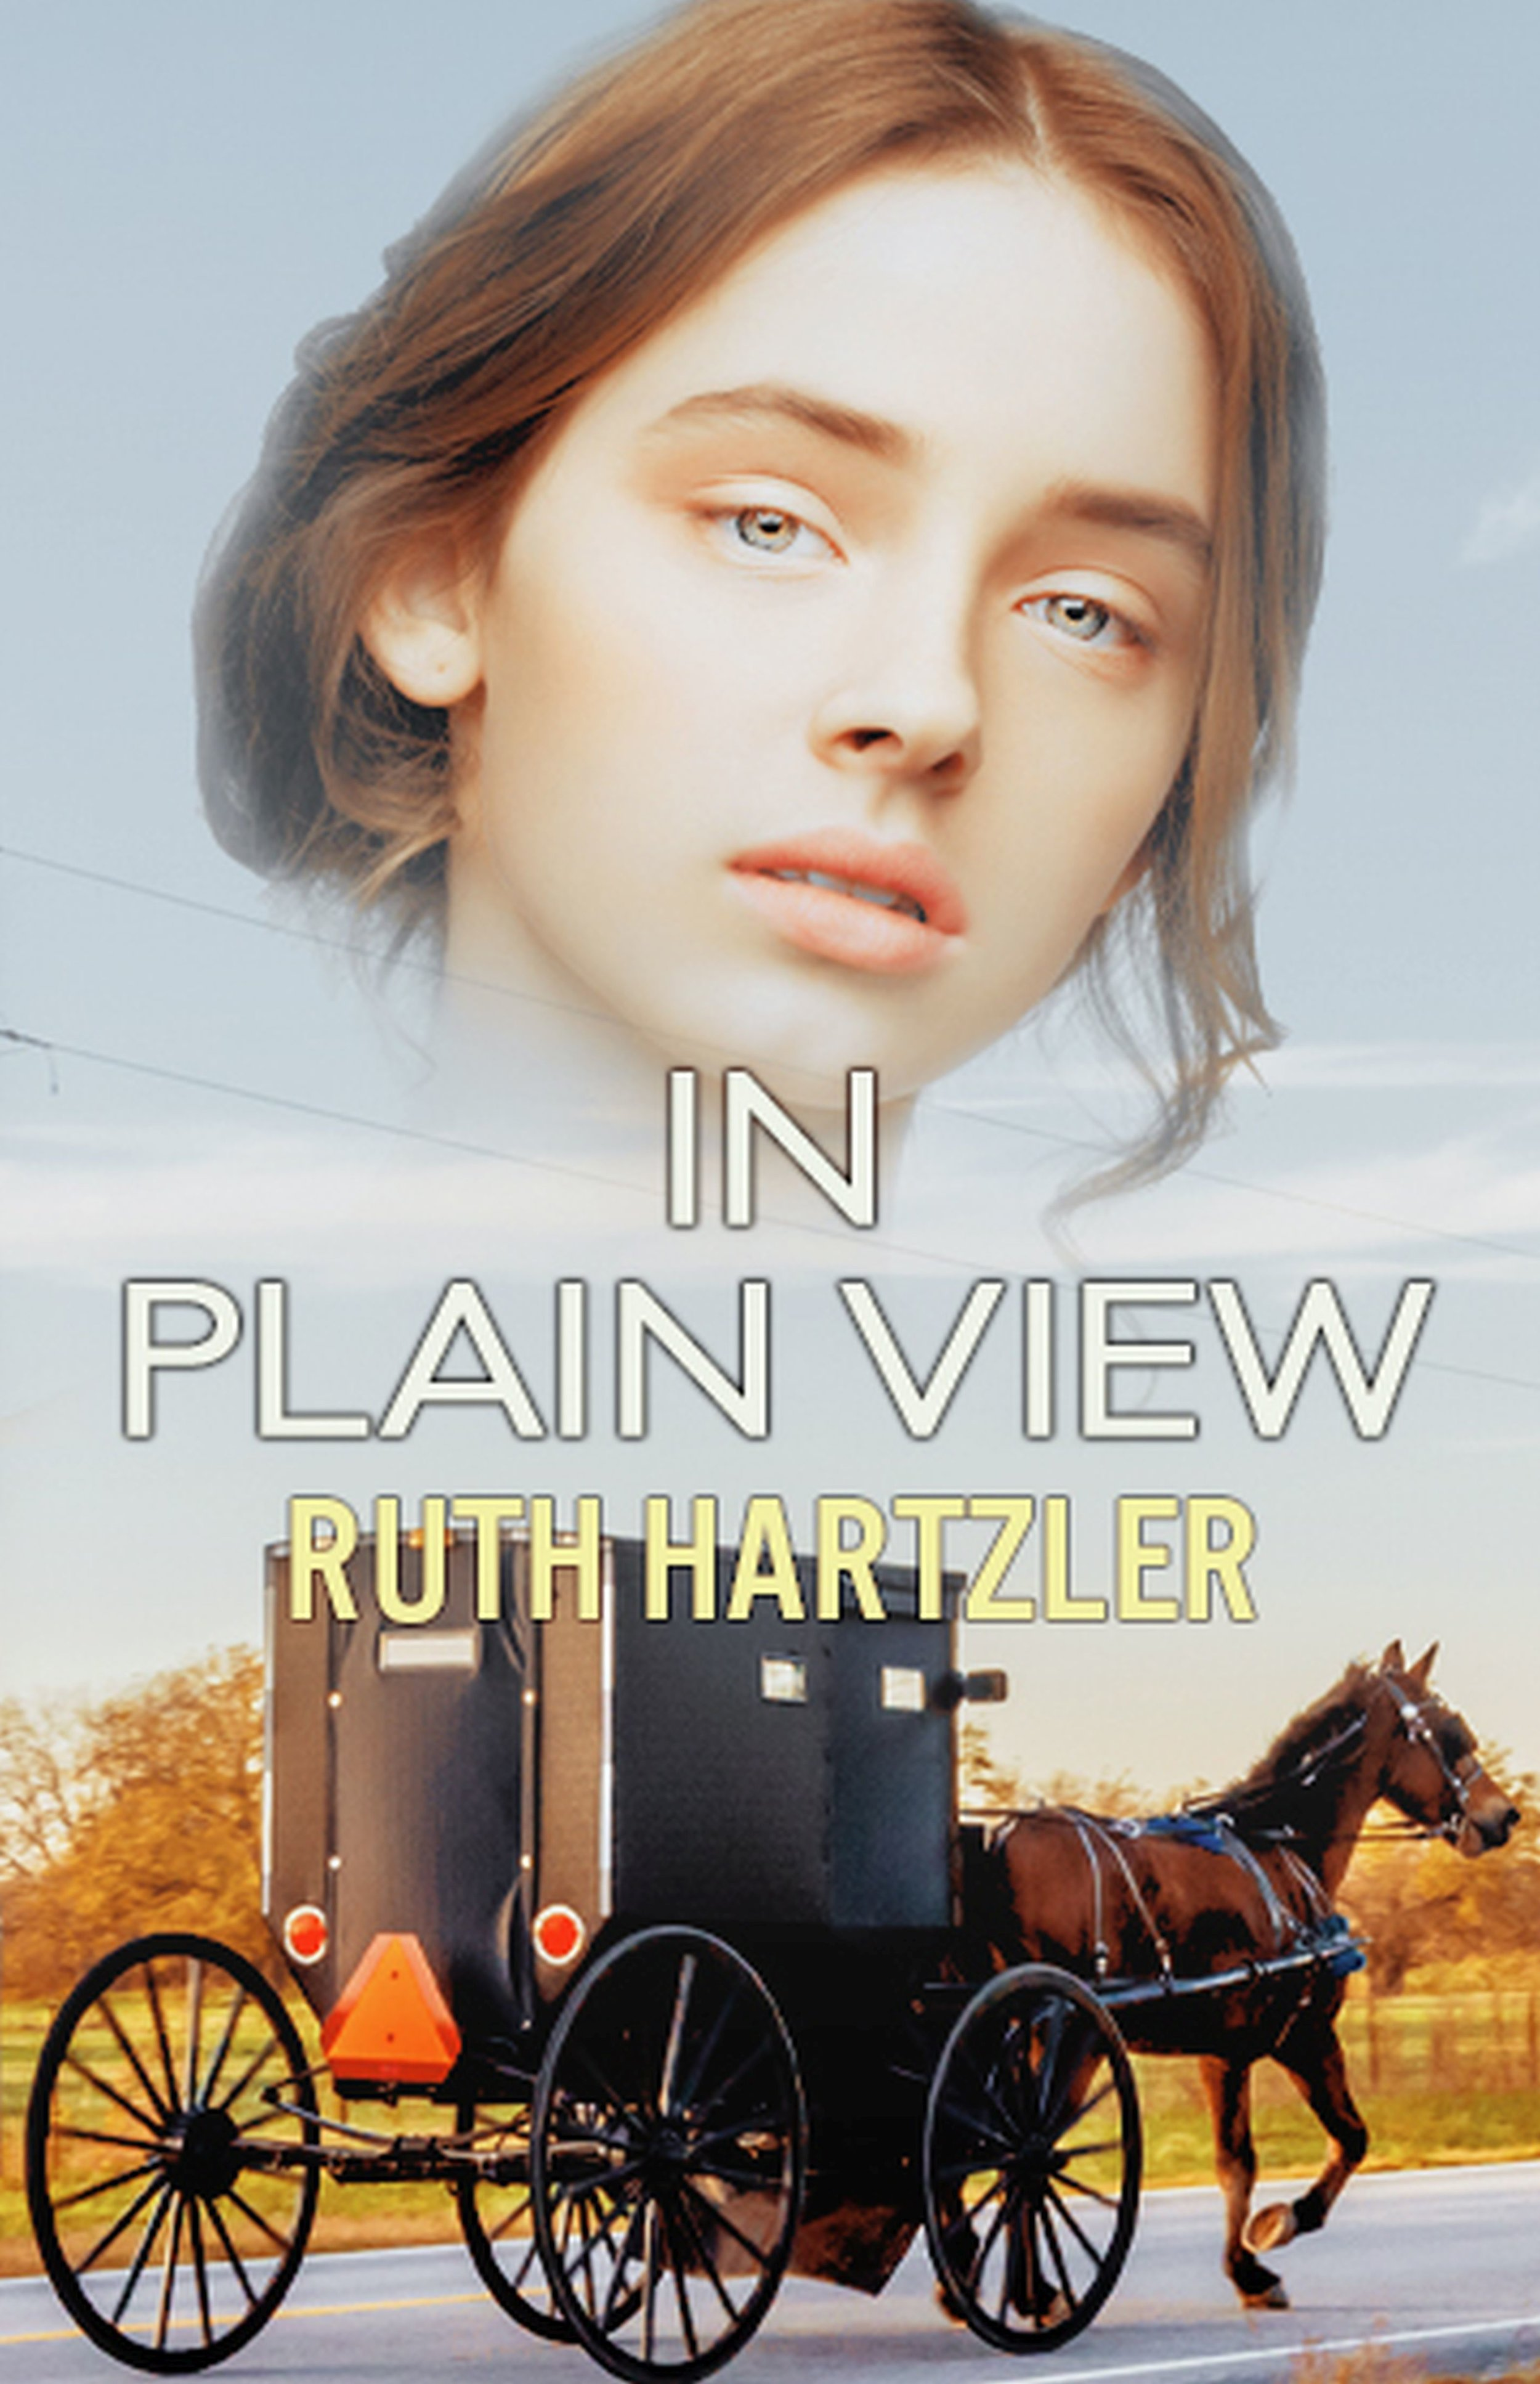 In Plain View - Amish Safe House Book 2 (Christian Romantic Suspense)U.S. Marshall, Kate Briggs, is still living undercover as an Amish woman, and is beginning to adjust to, and even enjoy, the Amish ways. Yet when a victim, a hitman for organized crime, is found in an Amish neighbor's pond, how will Kate solve the murder without arousing the suspicions of the handsome Detective Ryan Weaver, and blowing her cover? When Kate is captured by a notorious crime boss, will this be the end of her secret?AmazonNookKoboGoogle PlayAppleIn This Series1. Off The Grid2. In Plain View3. Safe HeartsAlso available as 3 Book Box Set, Amish Safe House Three Book Box Set